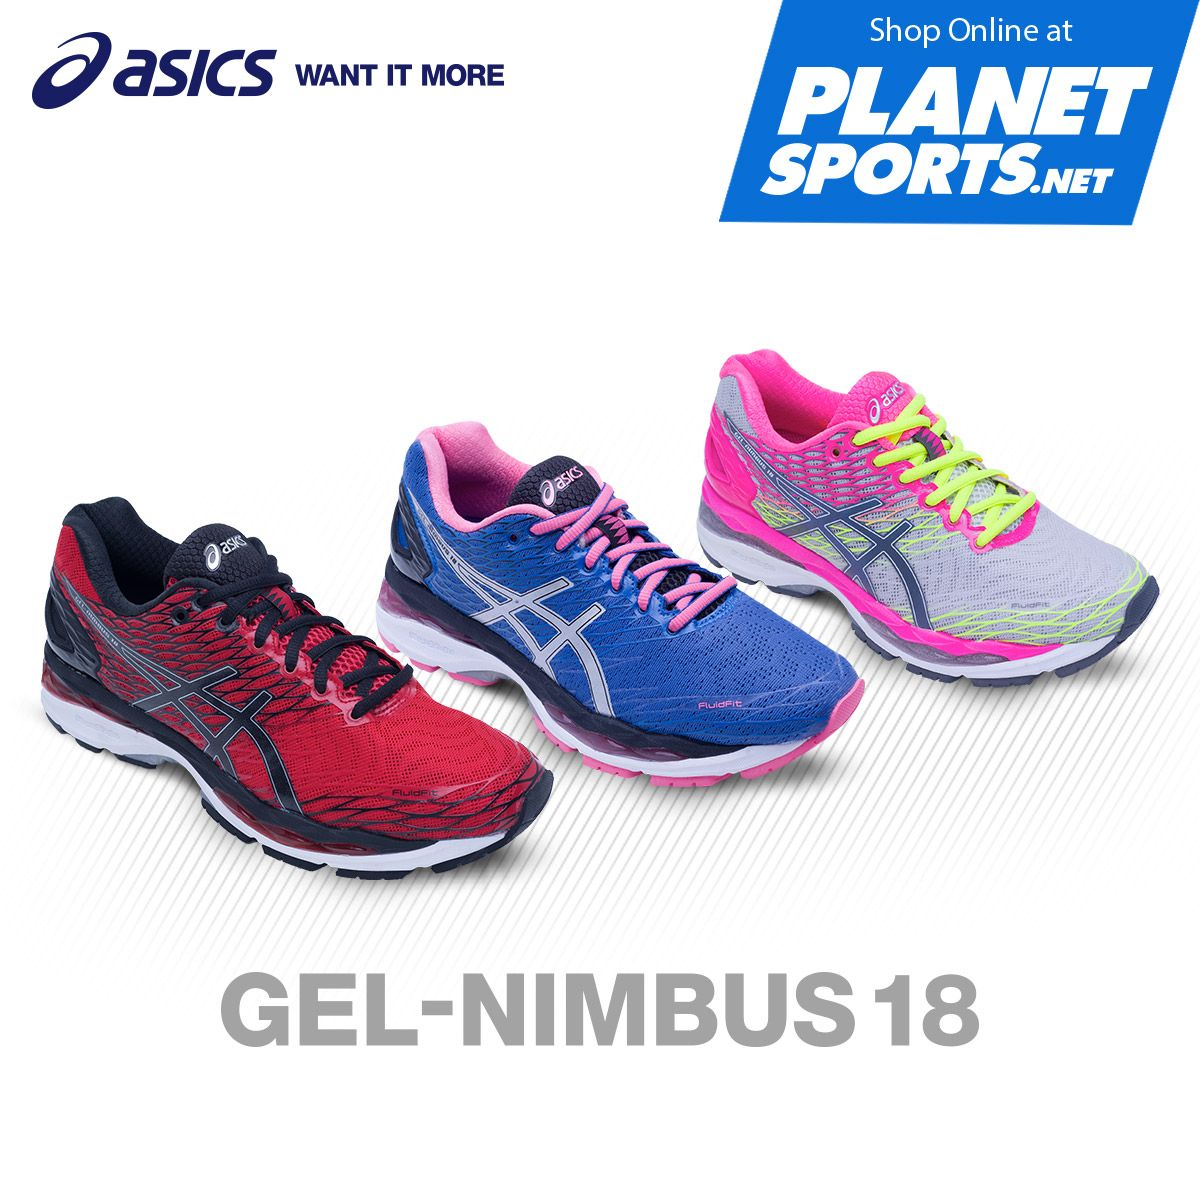 The Nimbus Modernized 18 New Offers Gel Placement Asics In T3KuJclF1